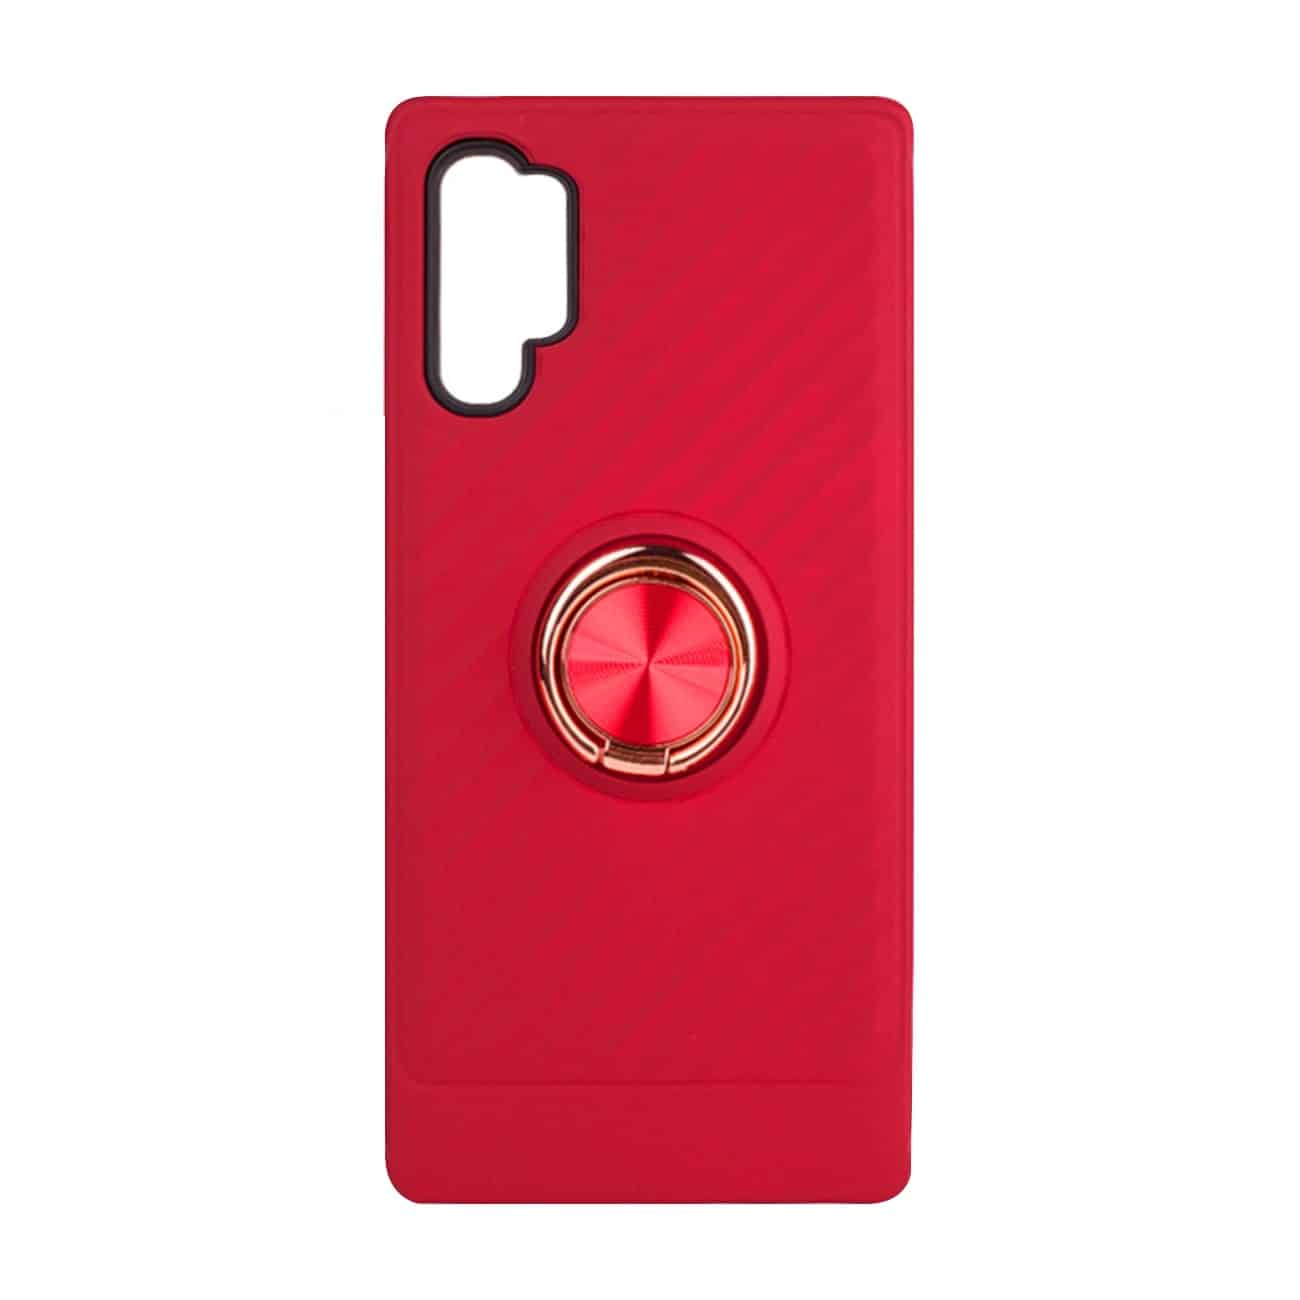 SAMSUNG GALAXY NOTE 10 PLUS Case with Ring Holder InRed